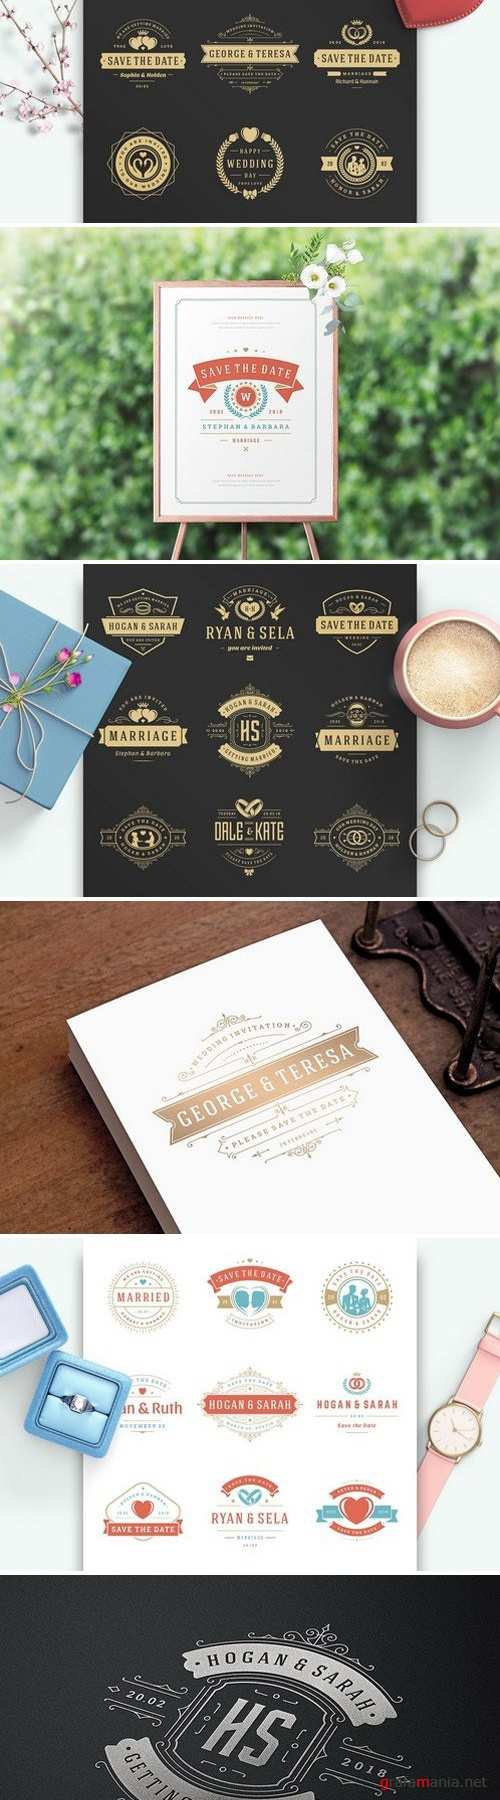 18 Wedding Logos and Badges 2202046